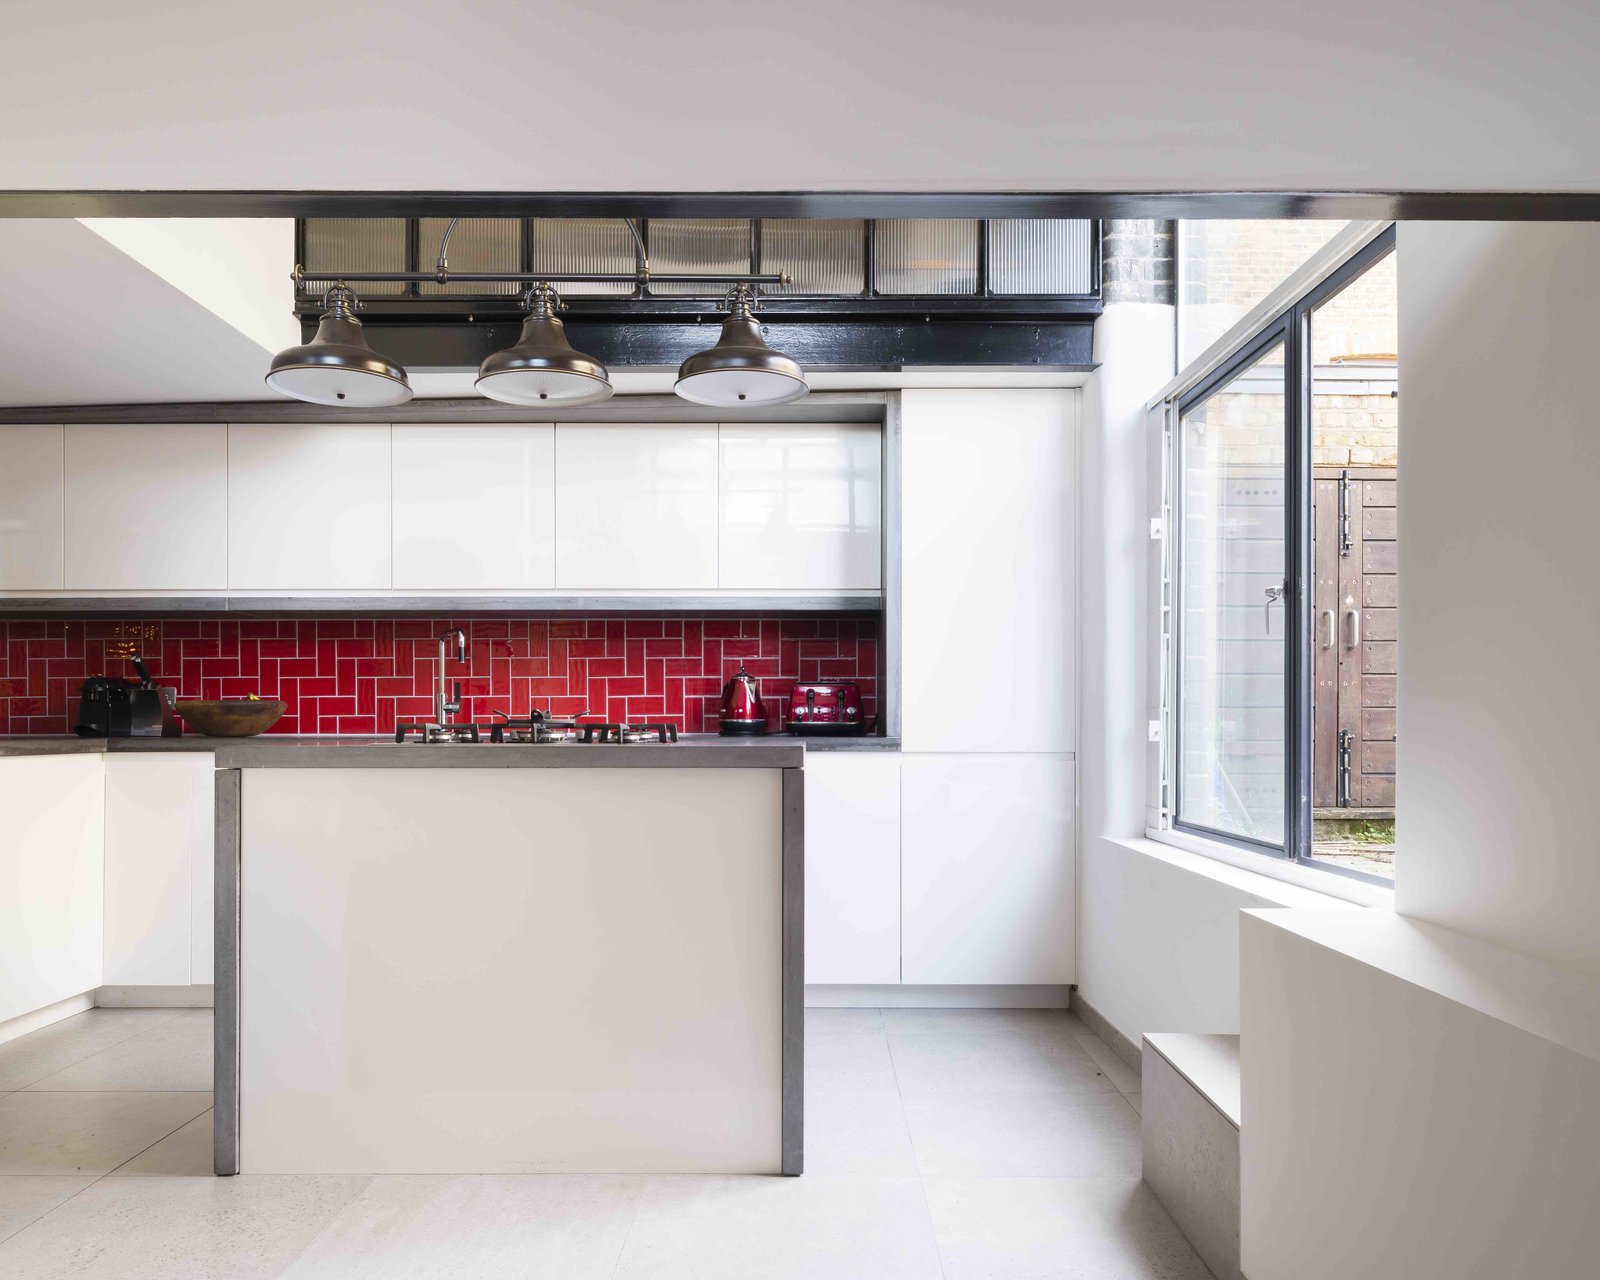 Tagged: Kitchen, Concrete Counter, White Cabinet, Ceramic Tile Floor, Subway Tile Backsplashe, Pendant Lighting, Refrigerator, Range, and Drop In Sink.  Photo 6 of 12 in An Old Grain Warehouse on the River Thames Is Transformed Into an Industrial-Modern Home